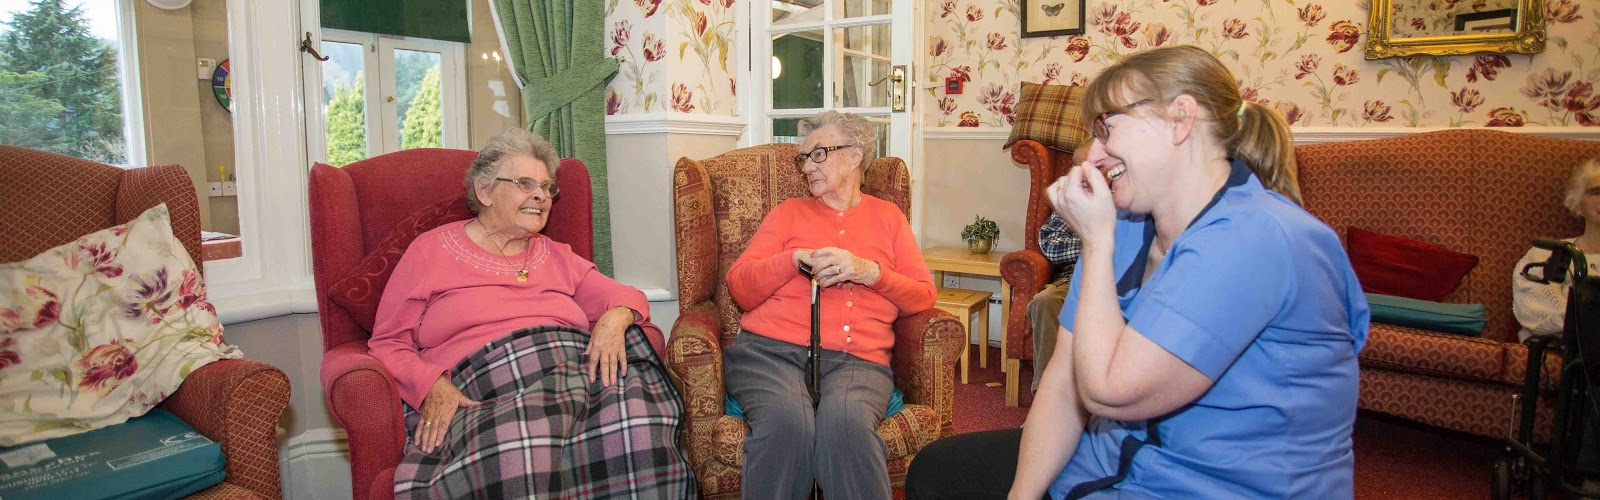 Specialised Respite Care | Manchester